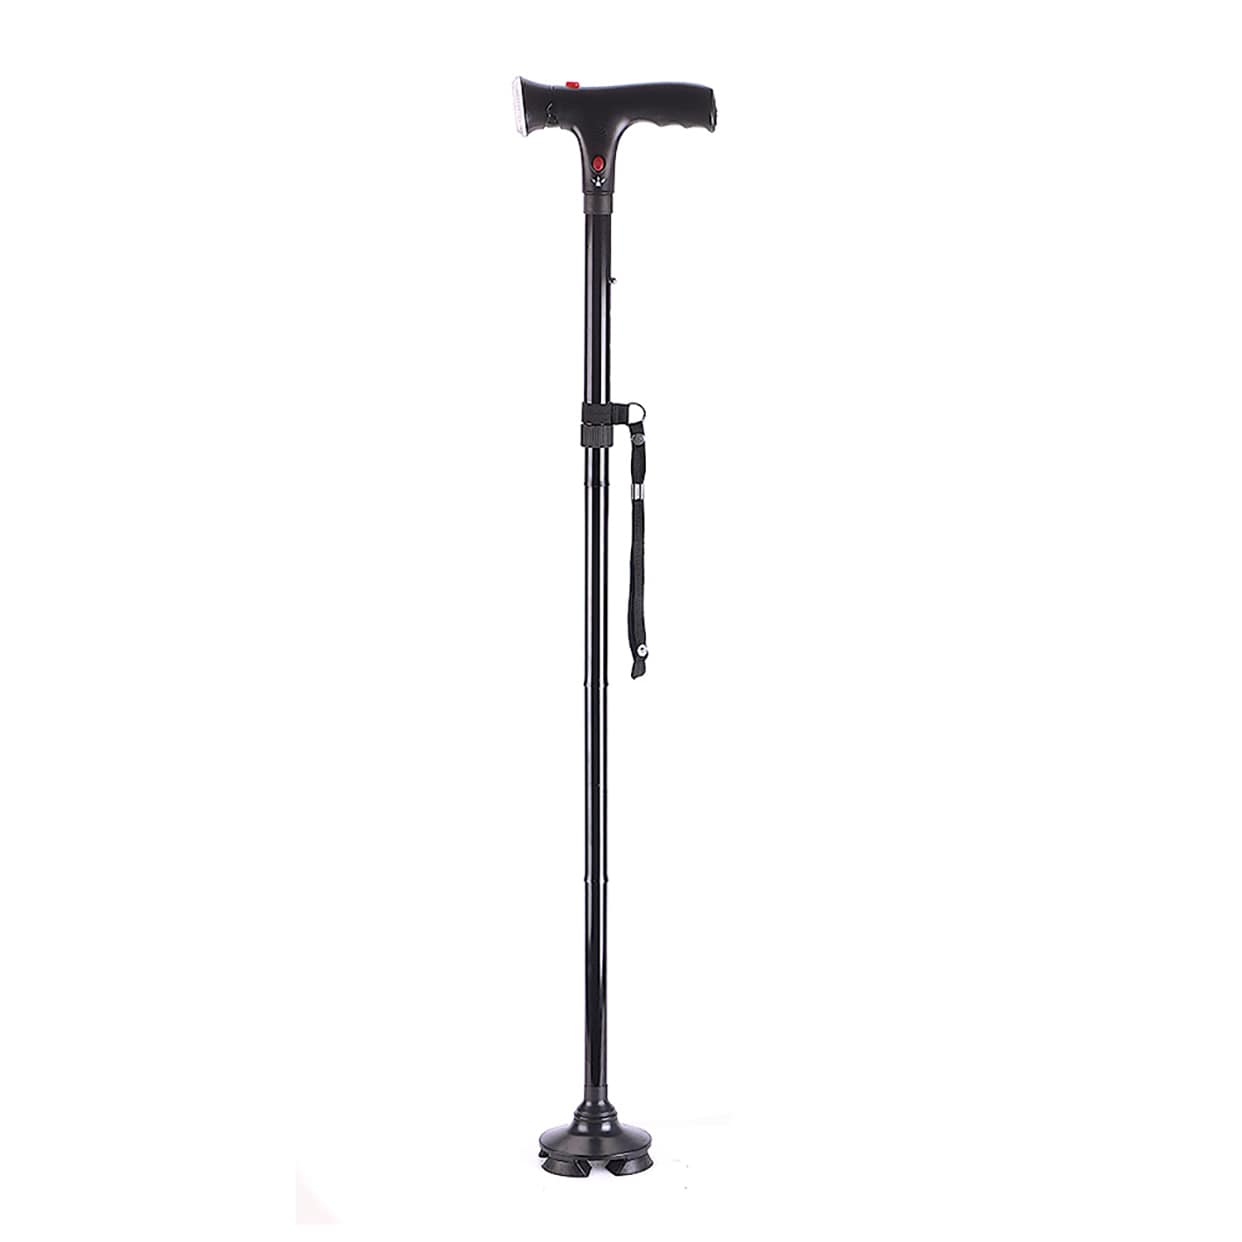 Deluxe Comfort Multi-Function Cane and Walking Stick, Sil...